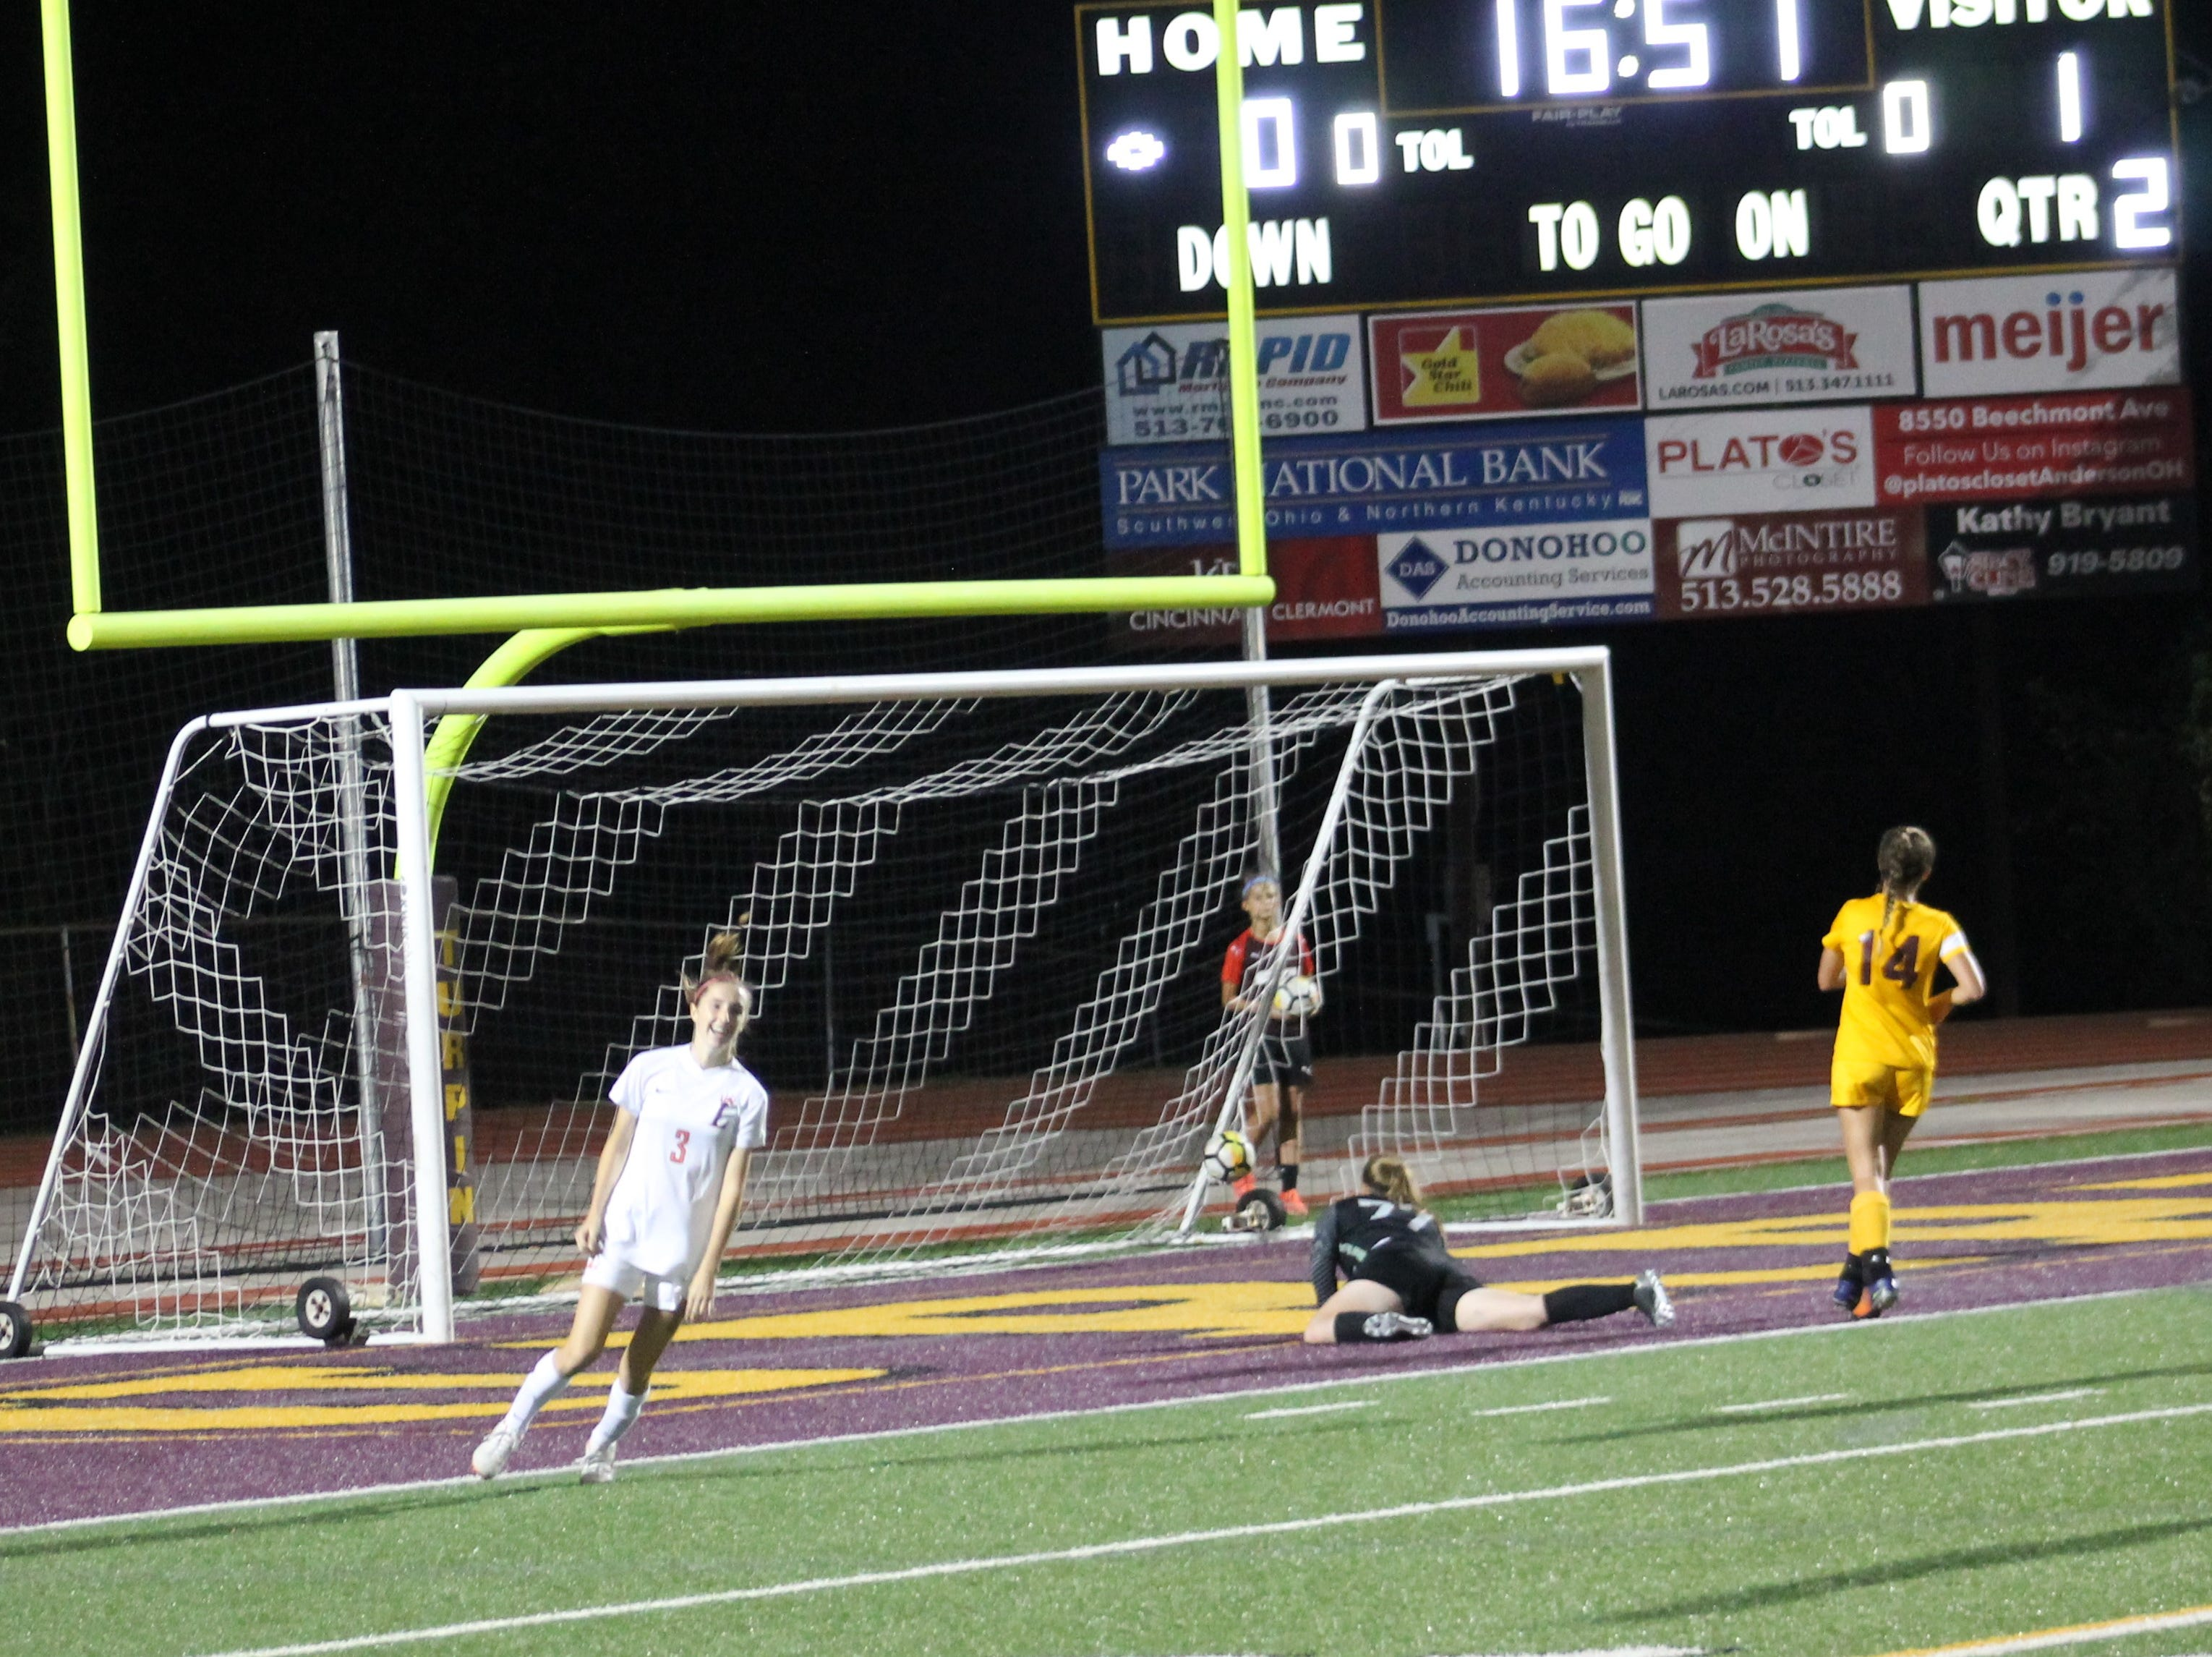 Allison Reynolds puts in the game's second goal for Loveland